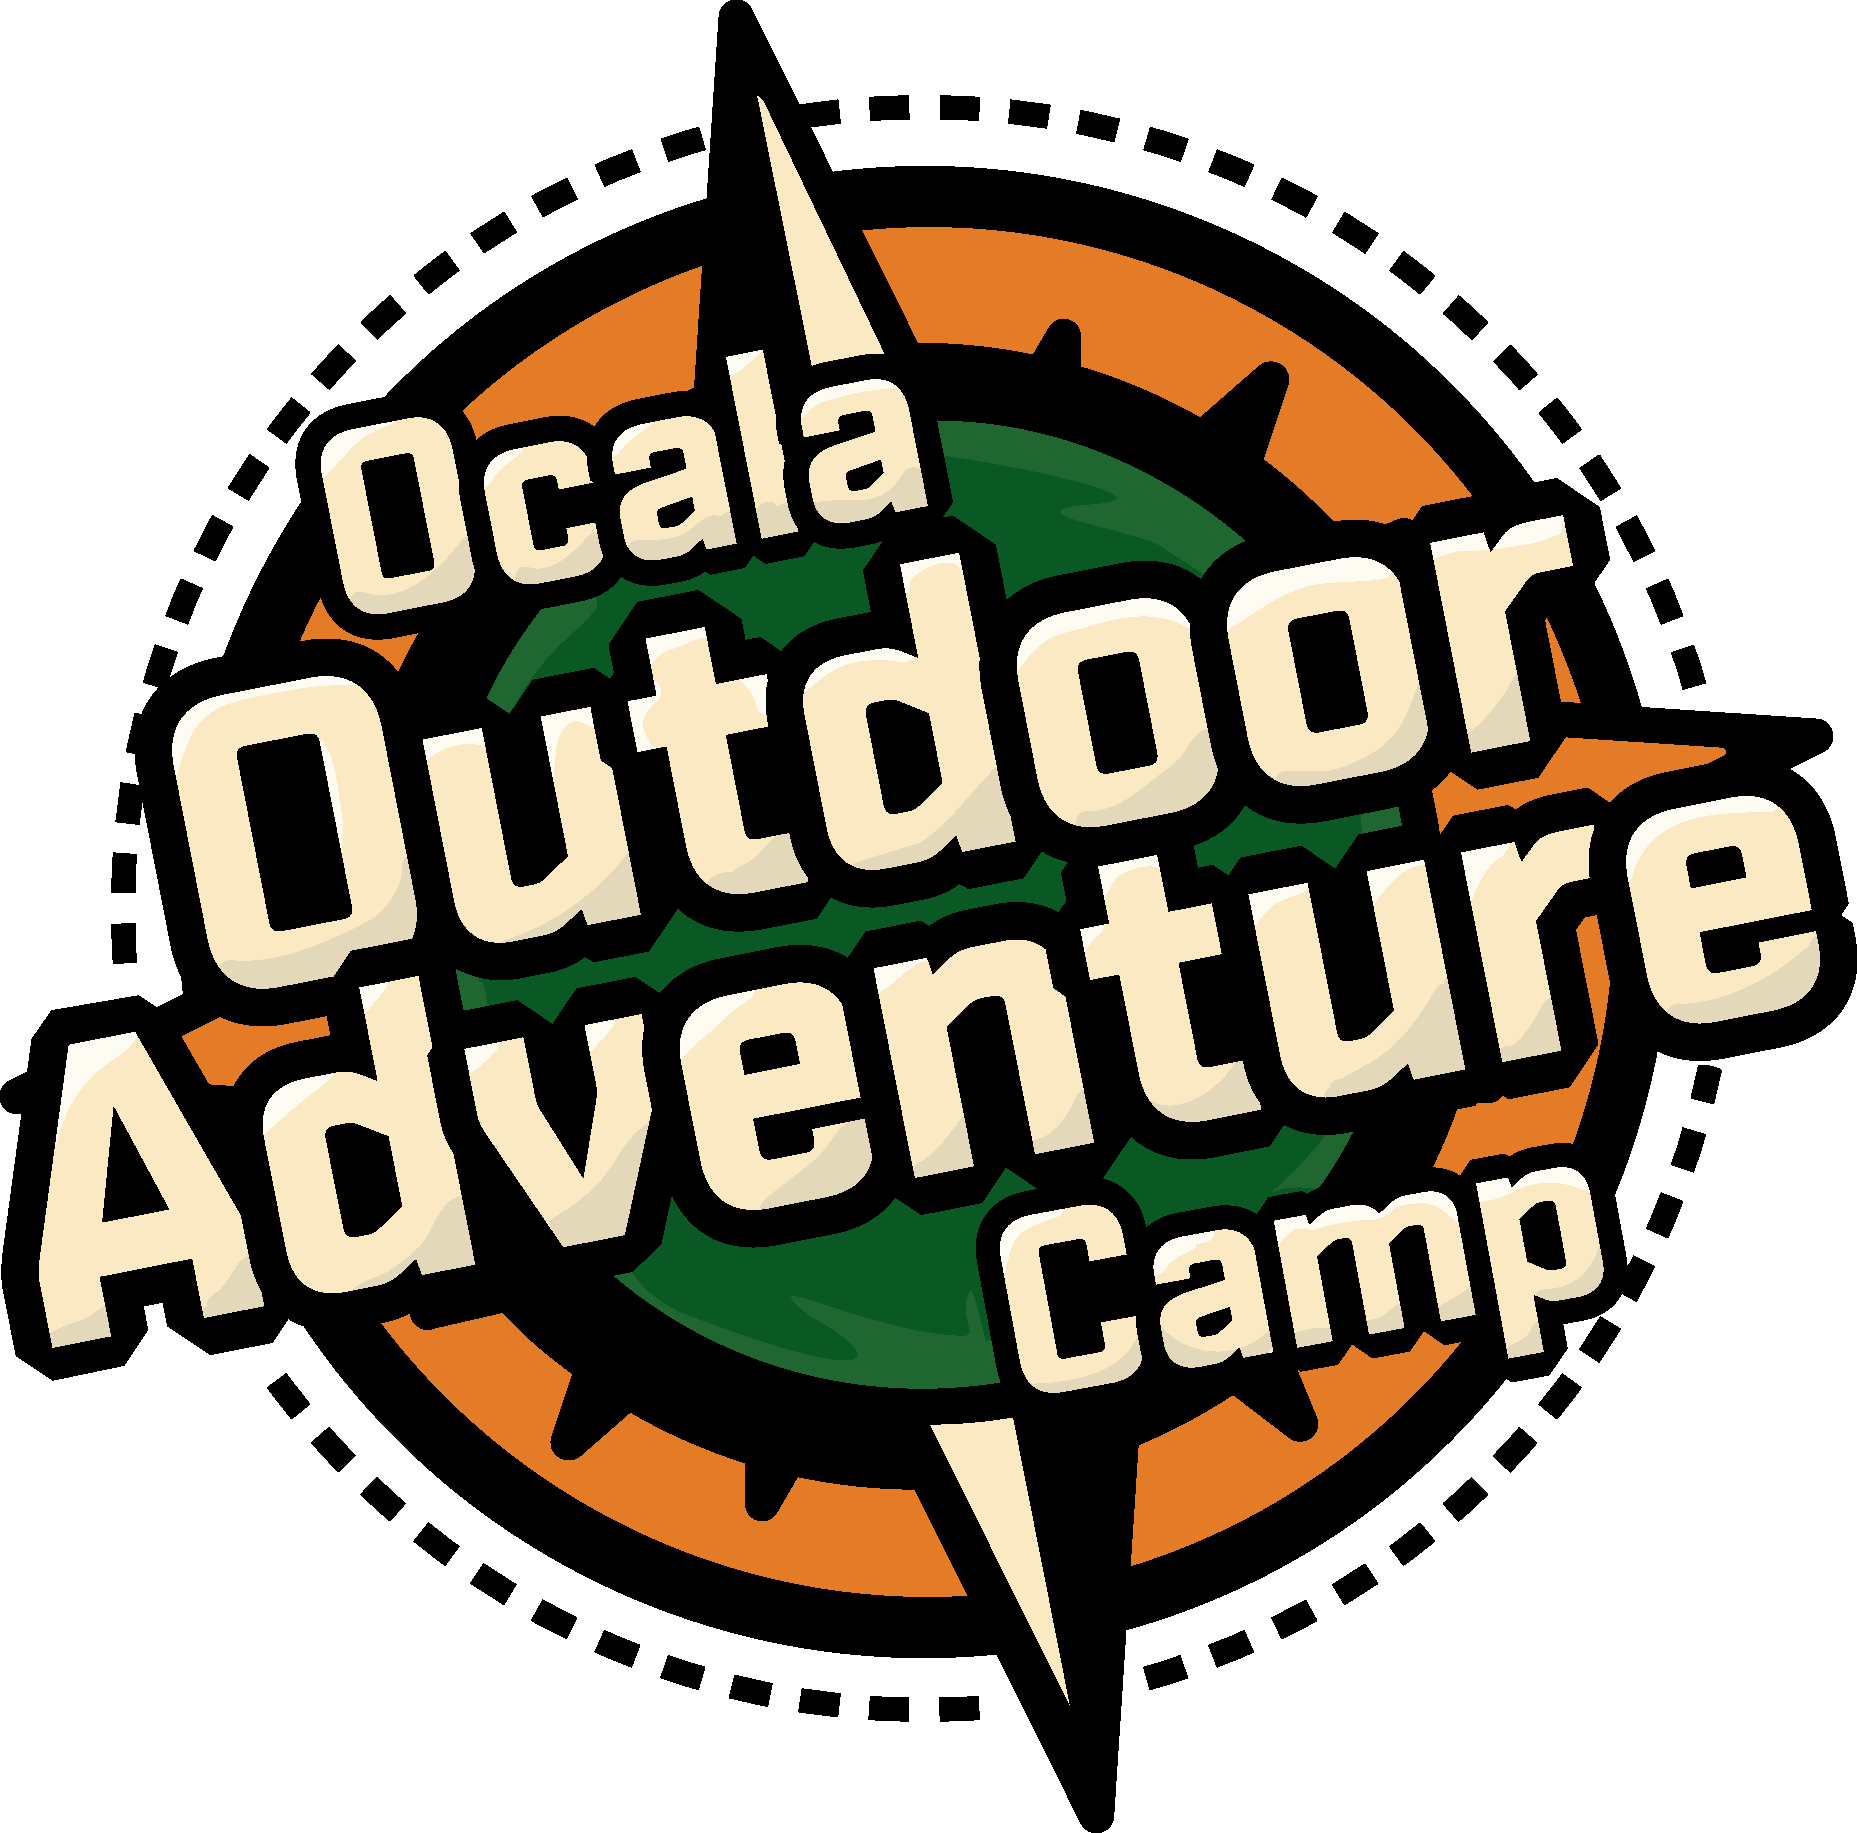 Ocala Conservation Center and Youth Camp